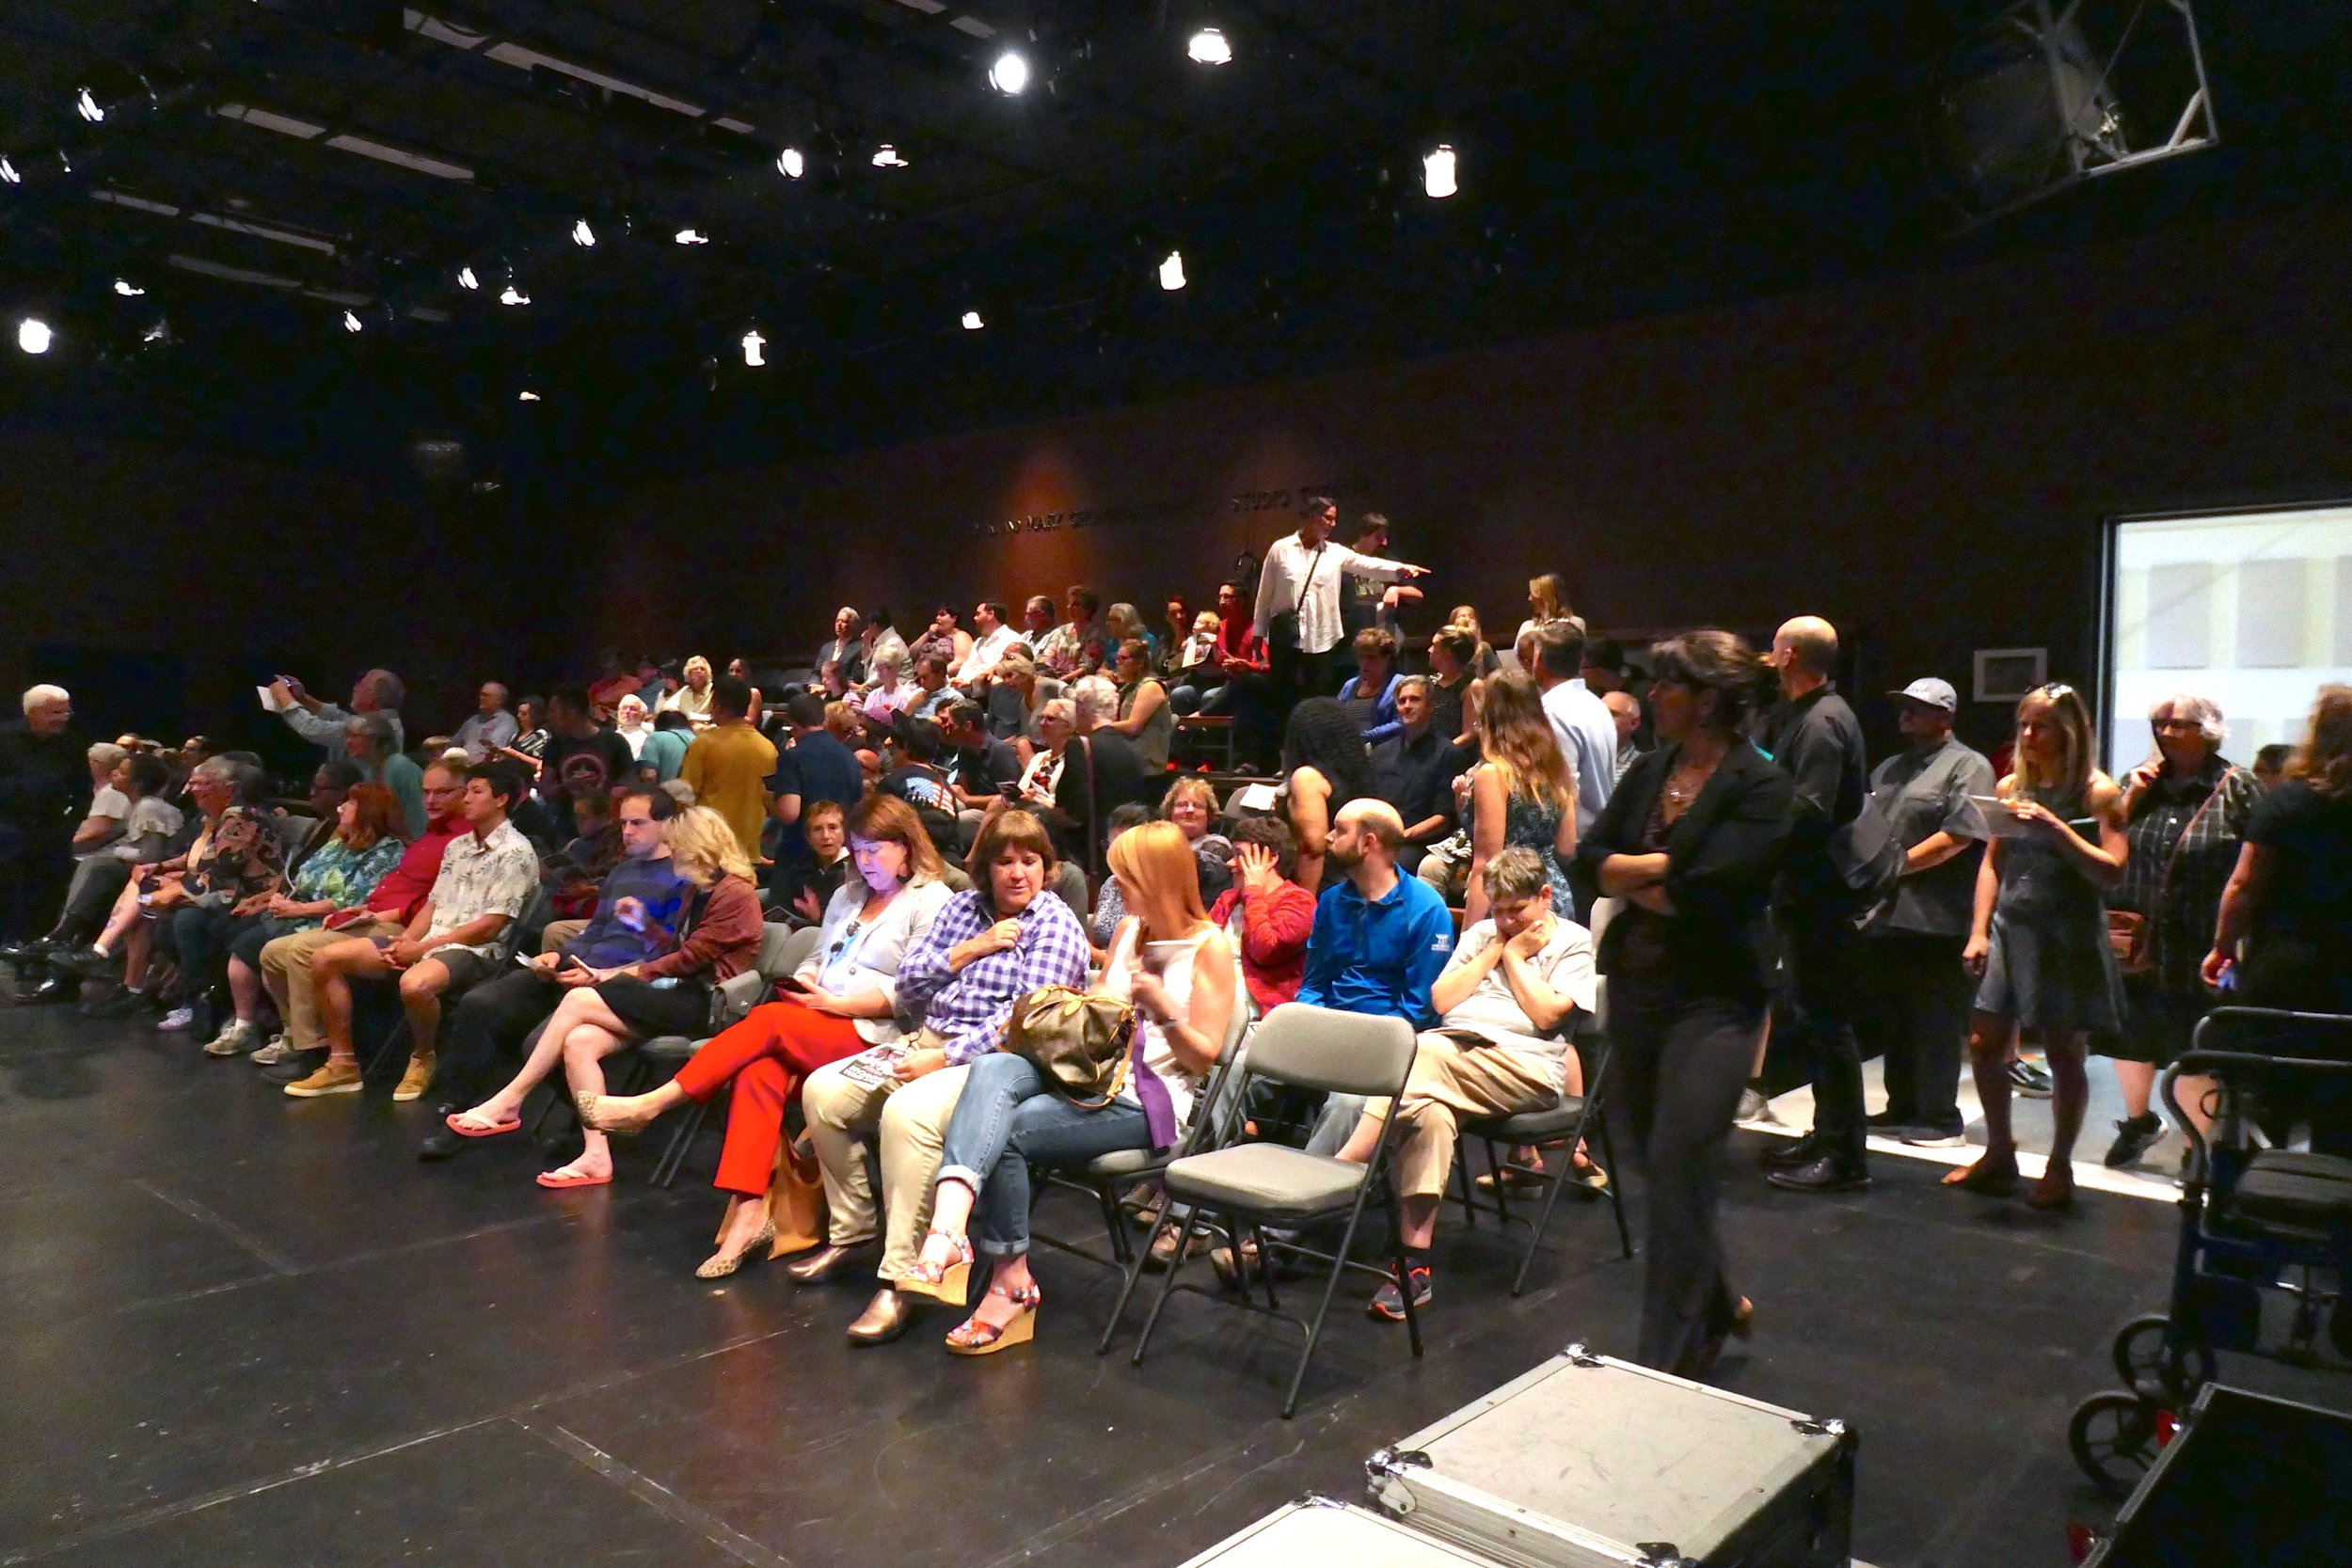 Full audience of seated people in a black box theatre